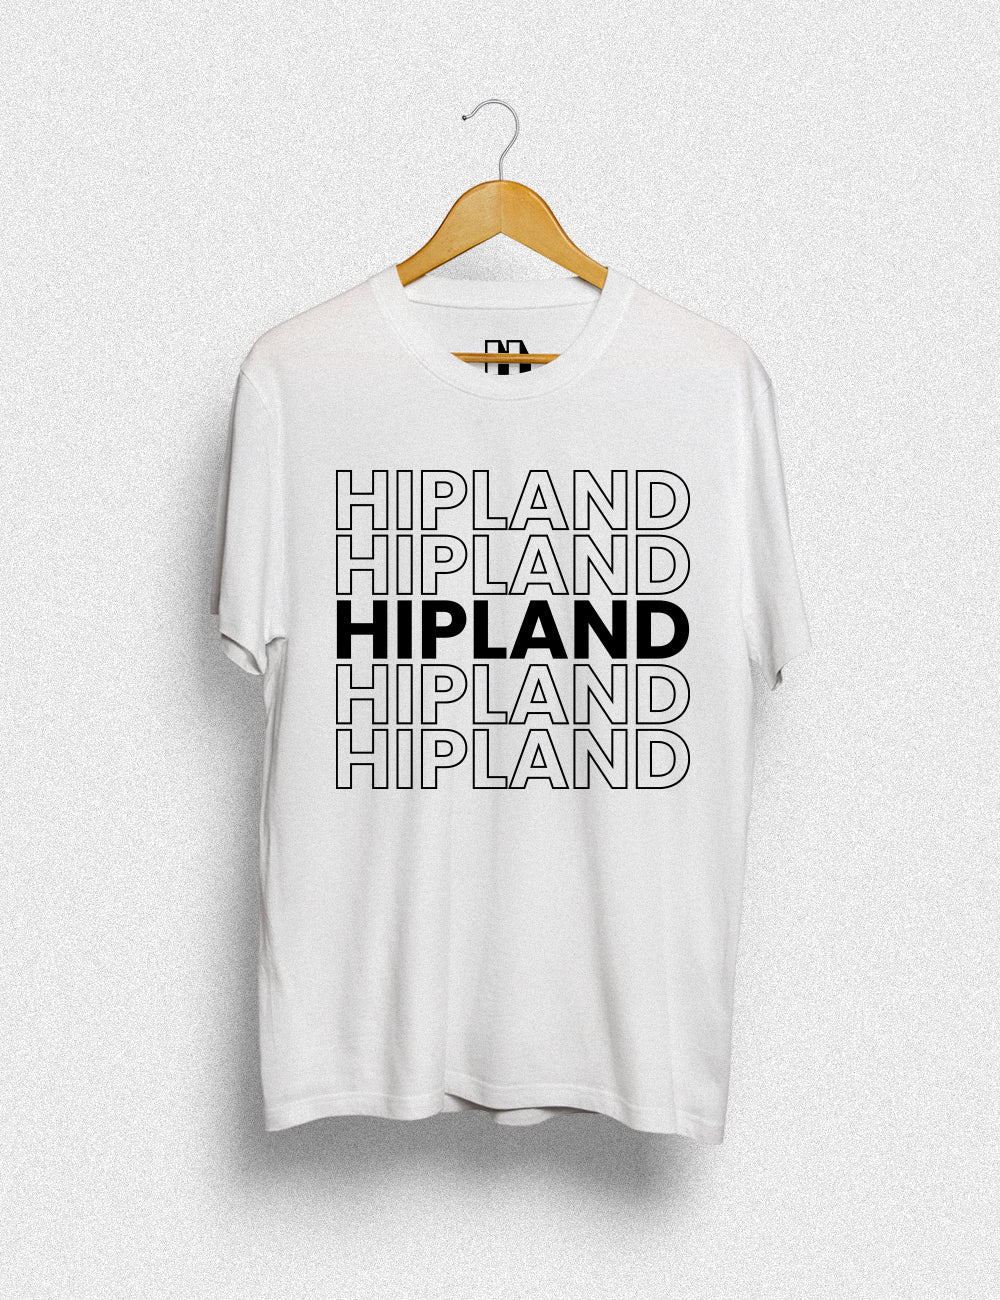 Hipland Solid Stroke unisex t-shirt in white